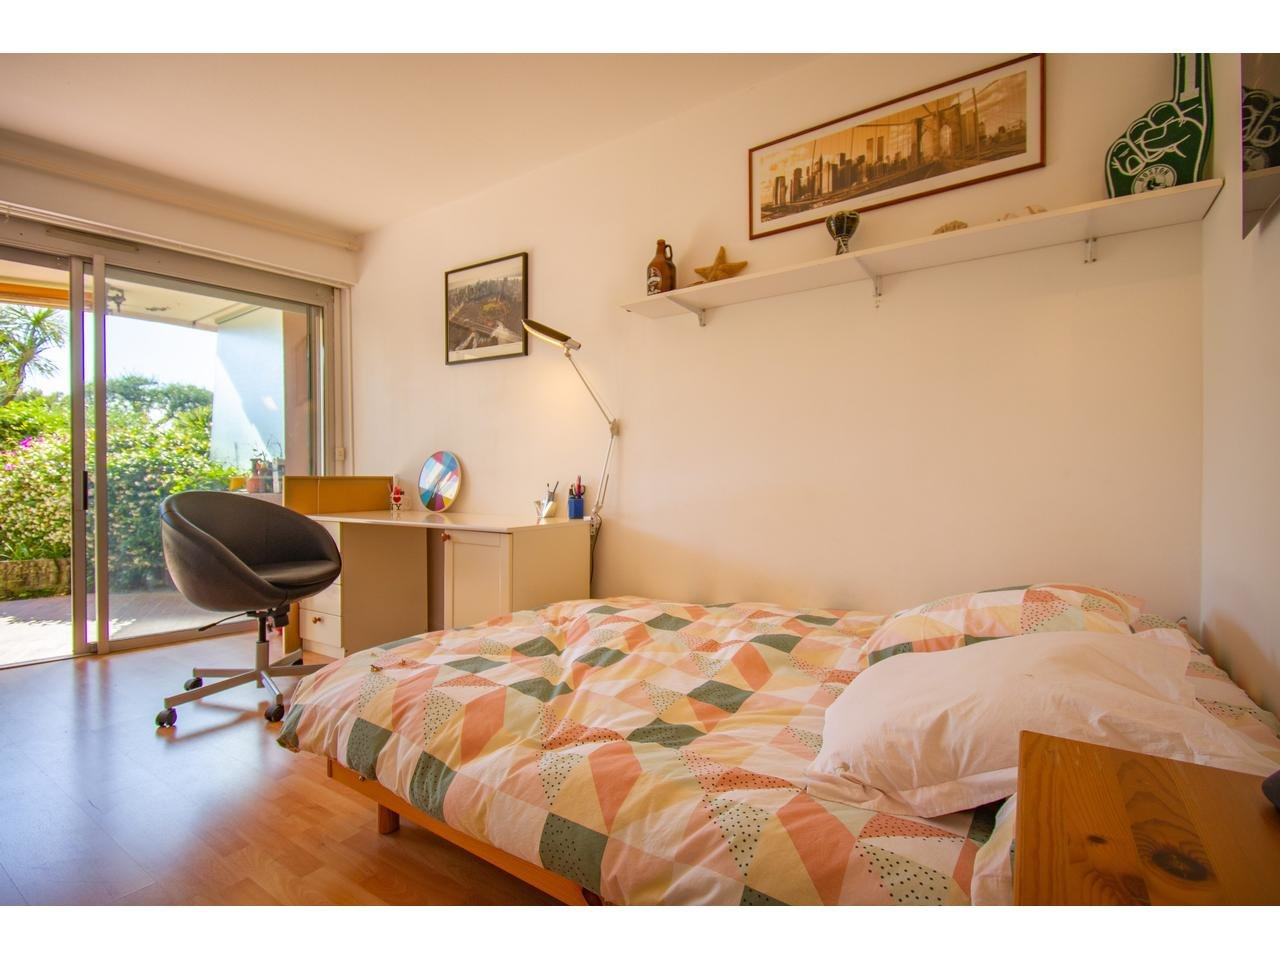 Appartement  4 Rooms 85m2  for sale   520000 €